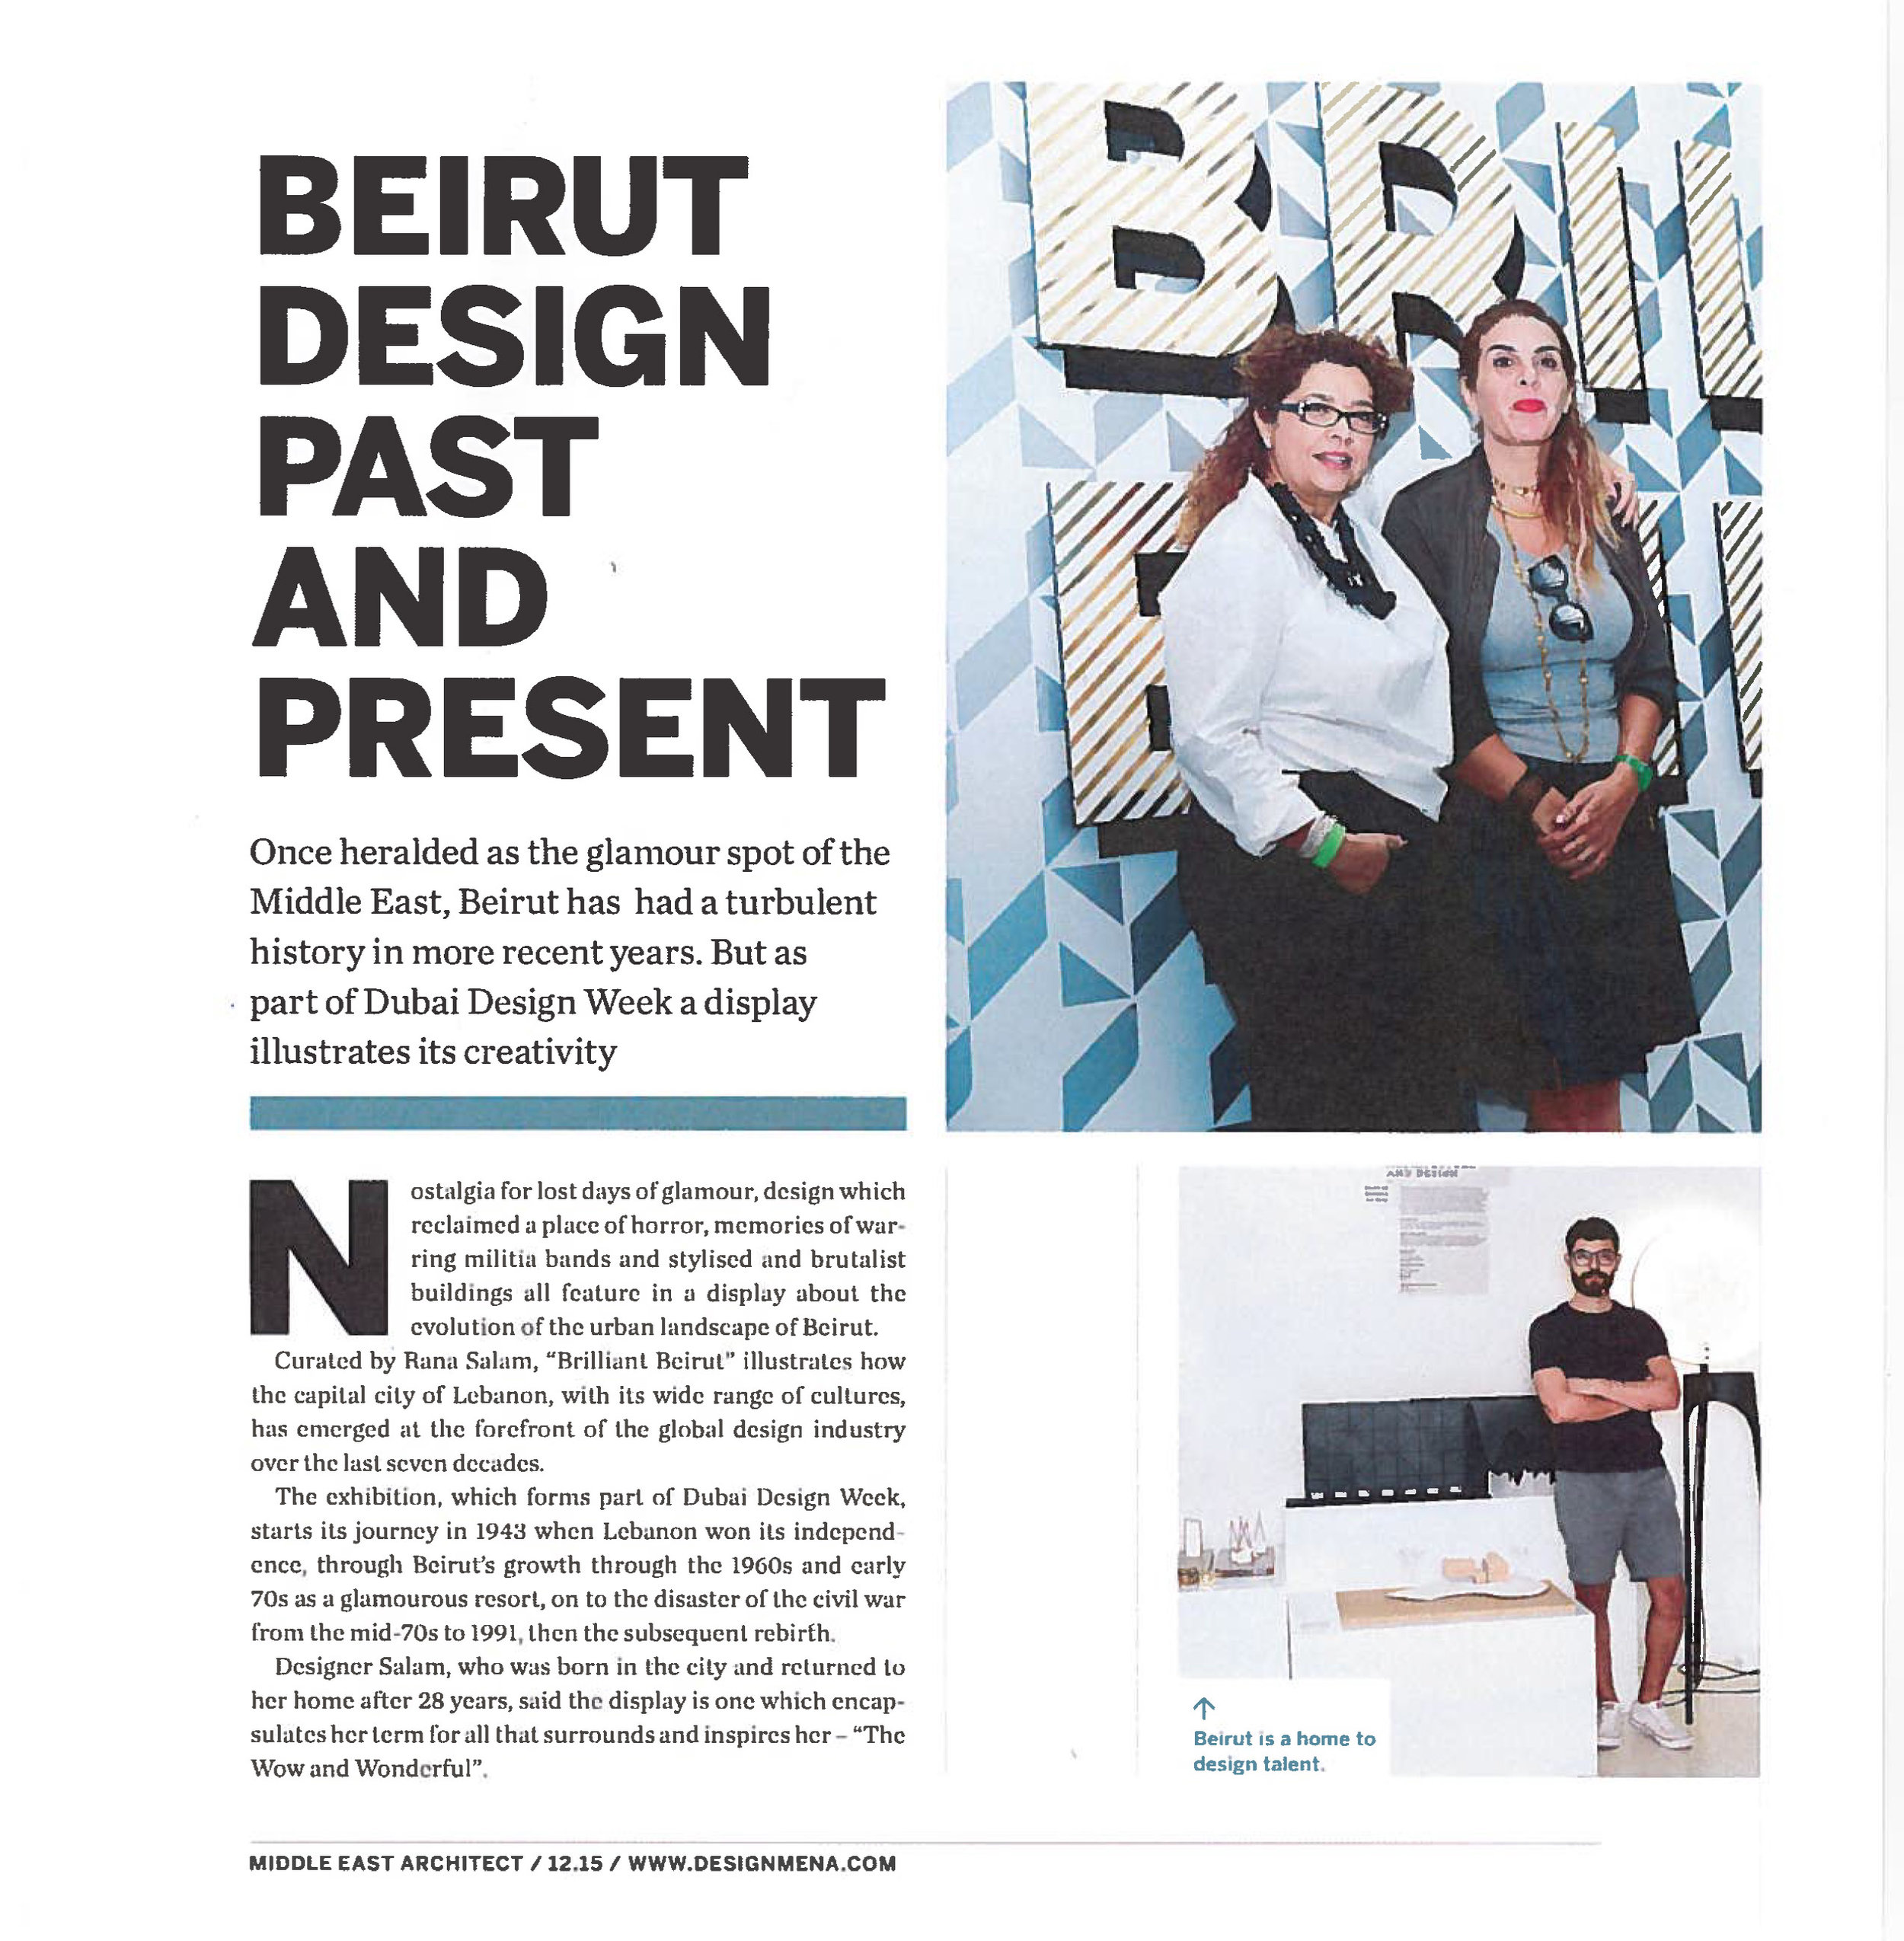 Middle East Architect_Beirut Deisgn Past and Present_Dec 2015-1.jpg